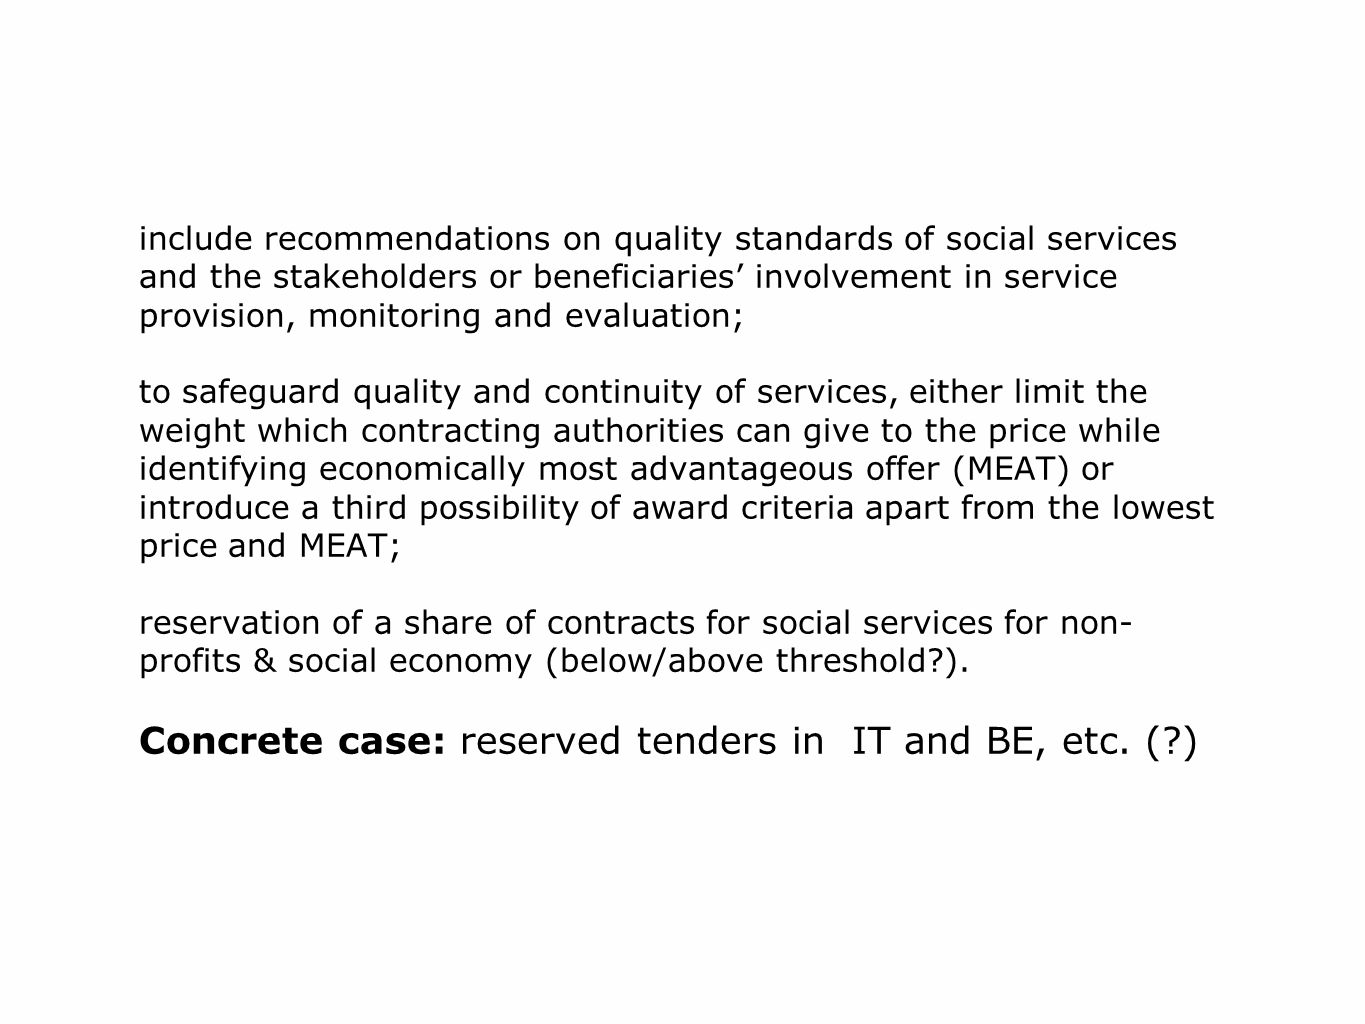 include recommendations on quality standards of social services and the stakeholders or bene­ficiaries' involvement in service provision, monitoring and evaluation; to safeguard quality and continuity of services, either limit the weight which contracting authorities can give to the price while identifying economically most advantageous offer (MEAT) or introduce a third possibility of award criteria apart from the lowest price and MEAT; reservation of a share of contracts for social services for non-profits & social economy (below/above threshold ).